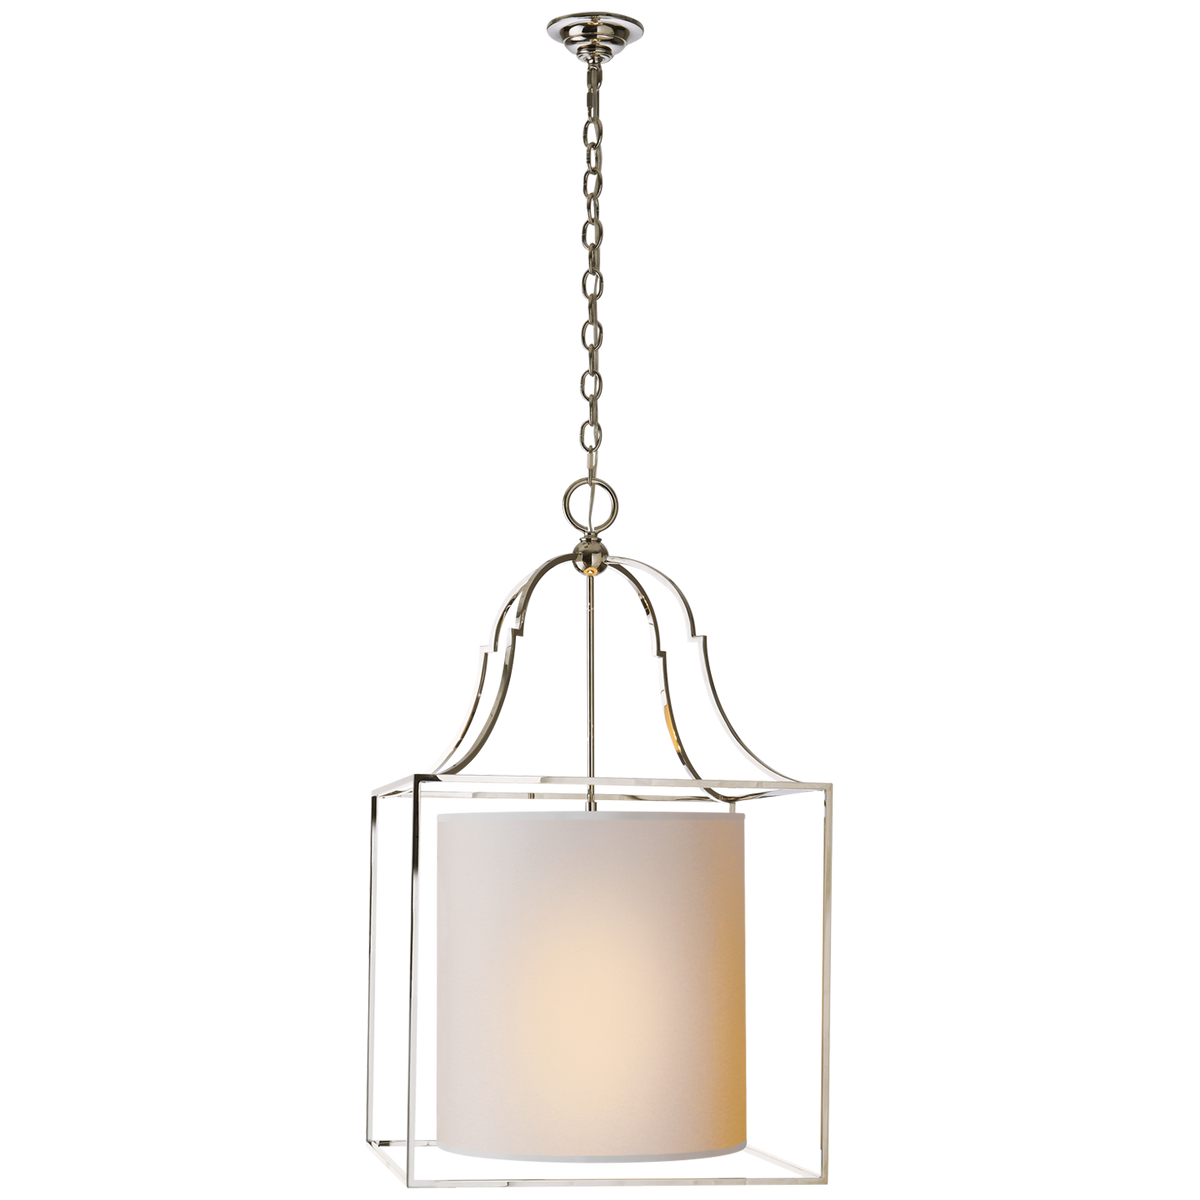 Gustavian Lantern in Polished Nickel with Natural Paper Shade